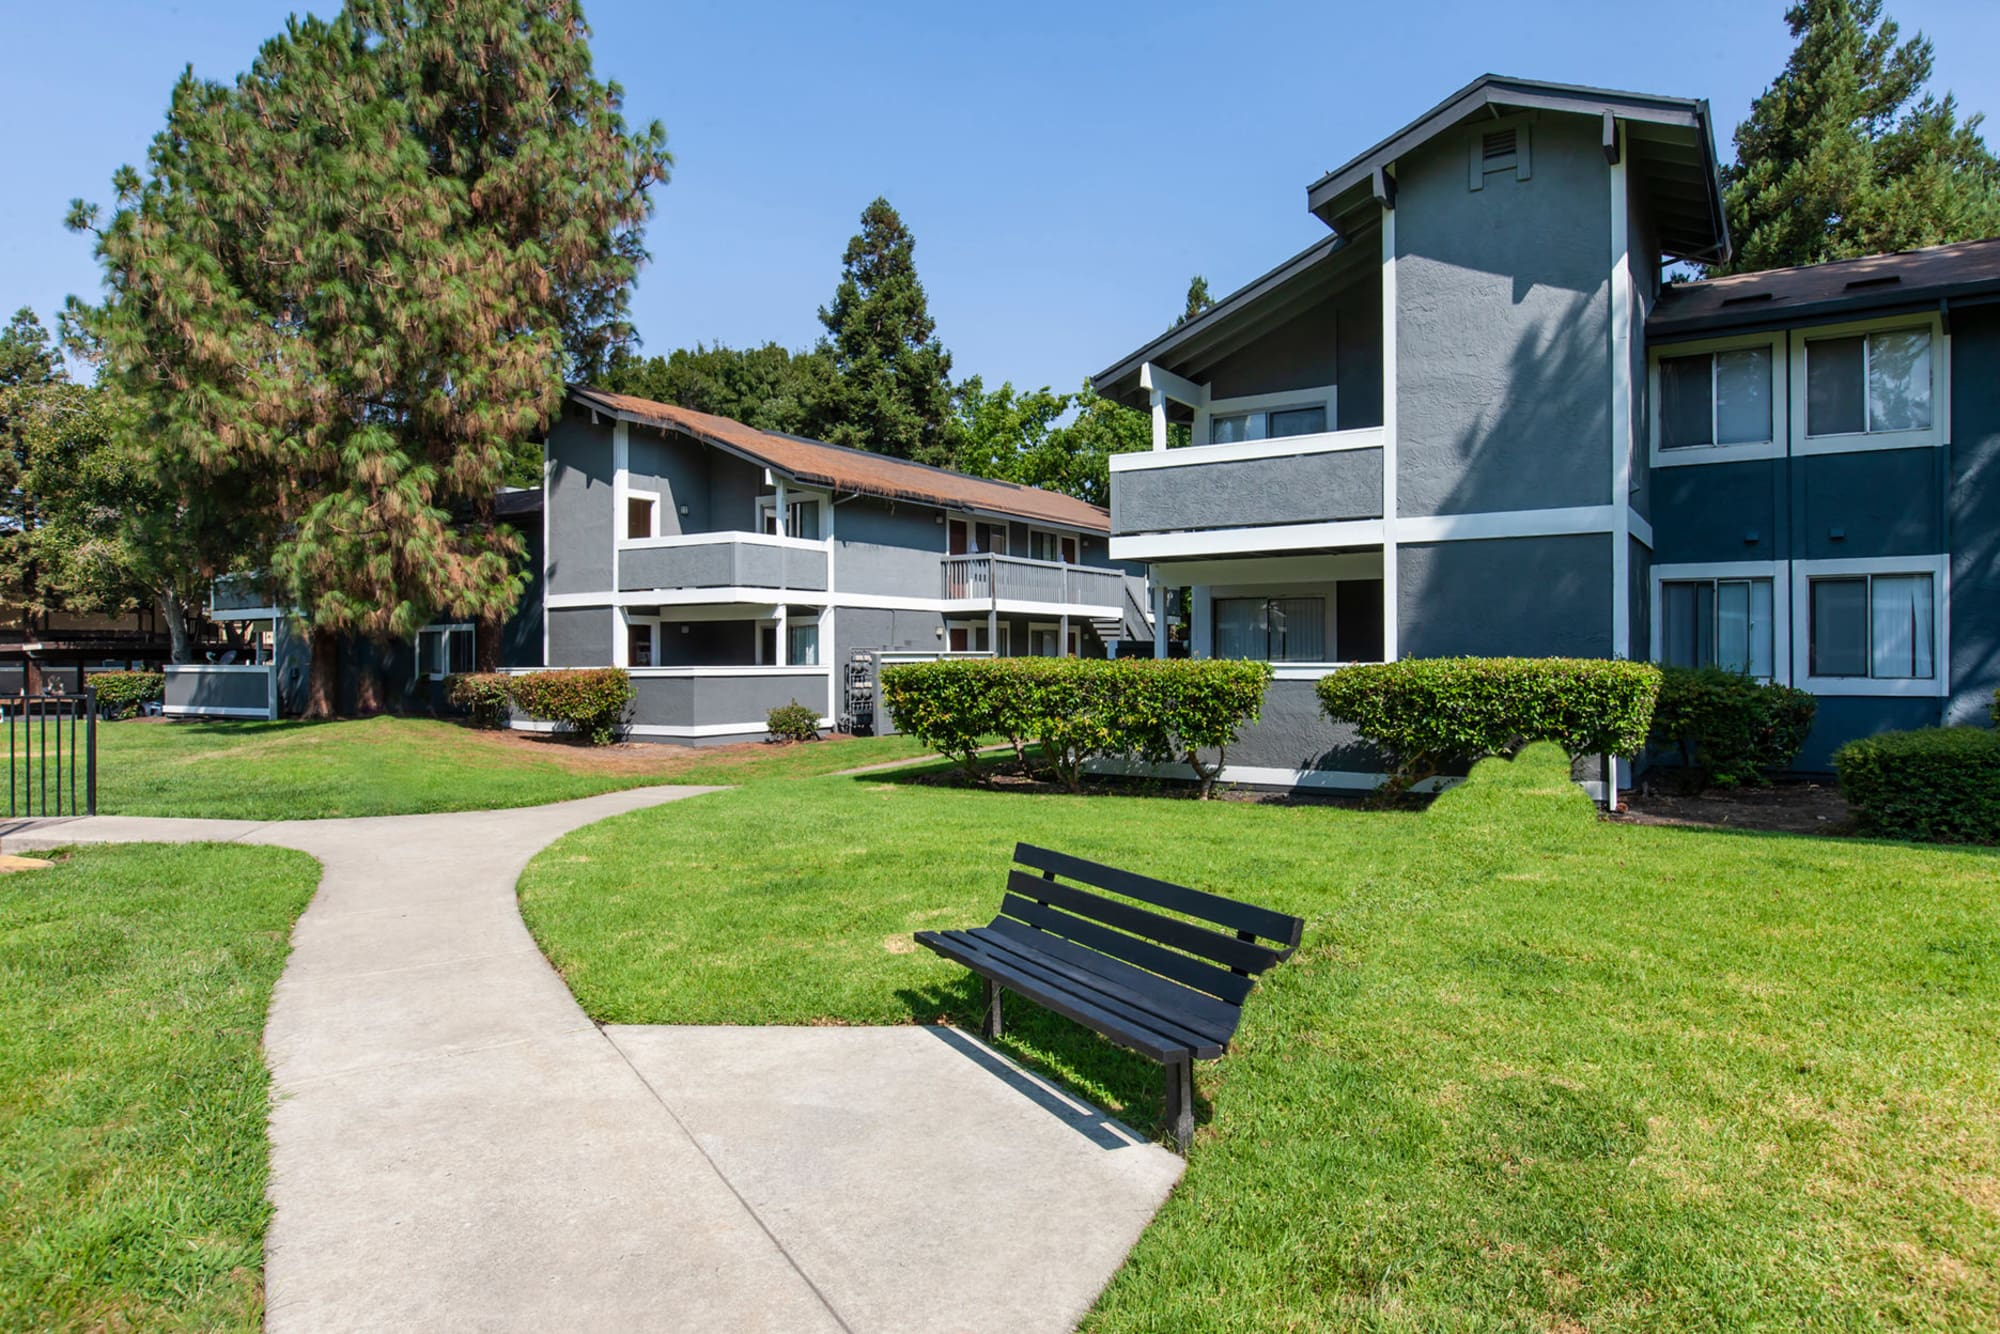 A bench and an open grassy area in front of Avery Park Apartments in Fairfield, California